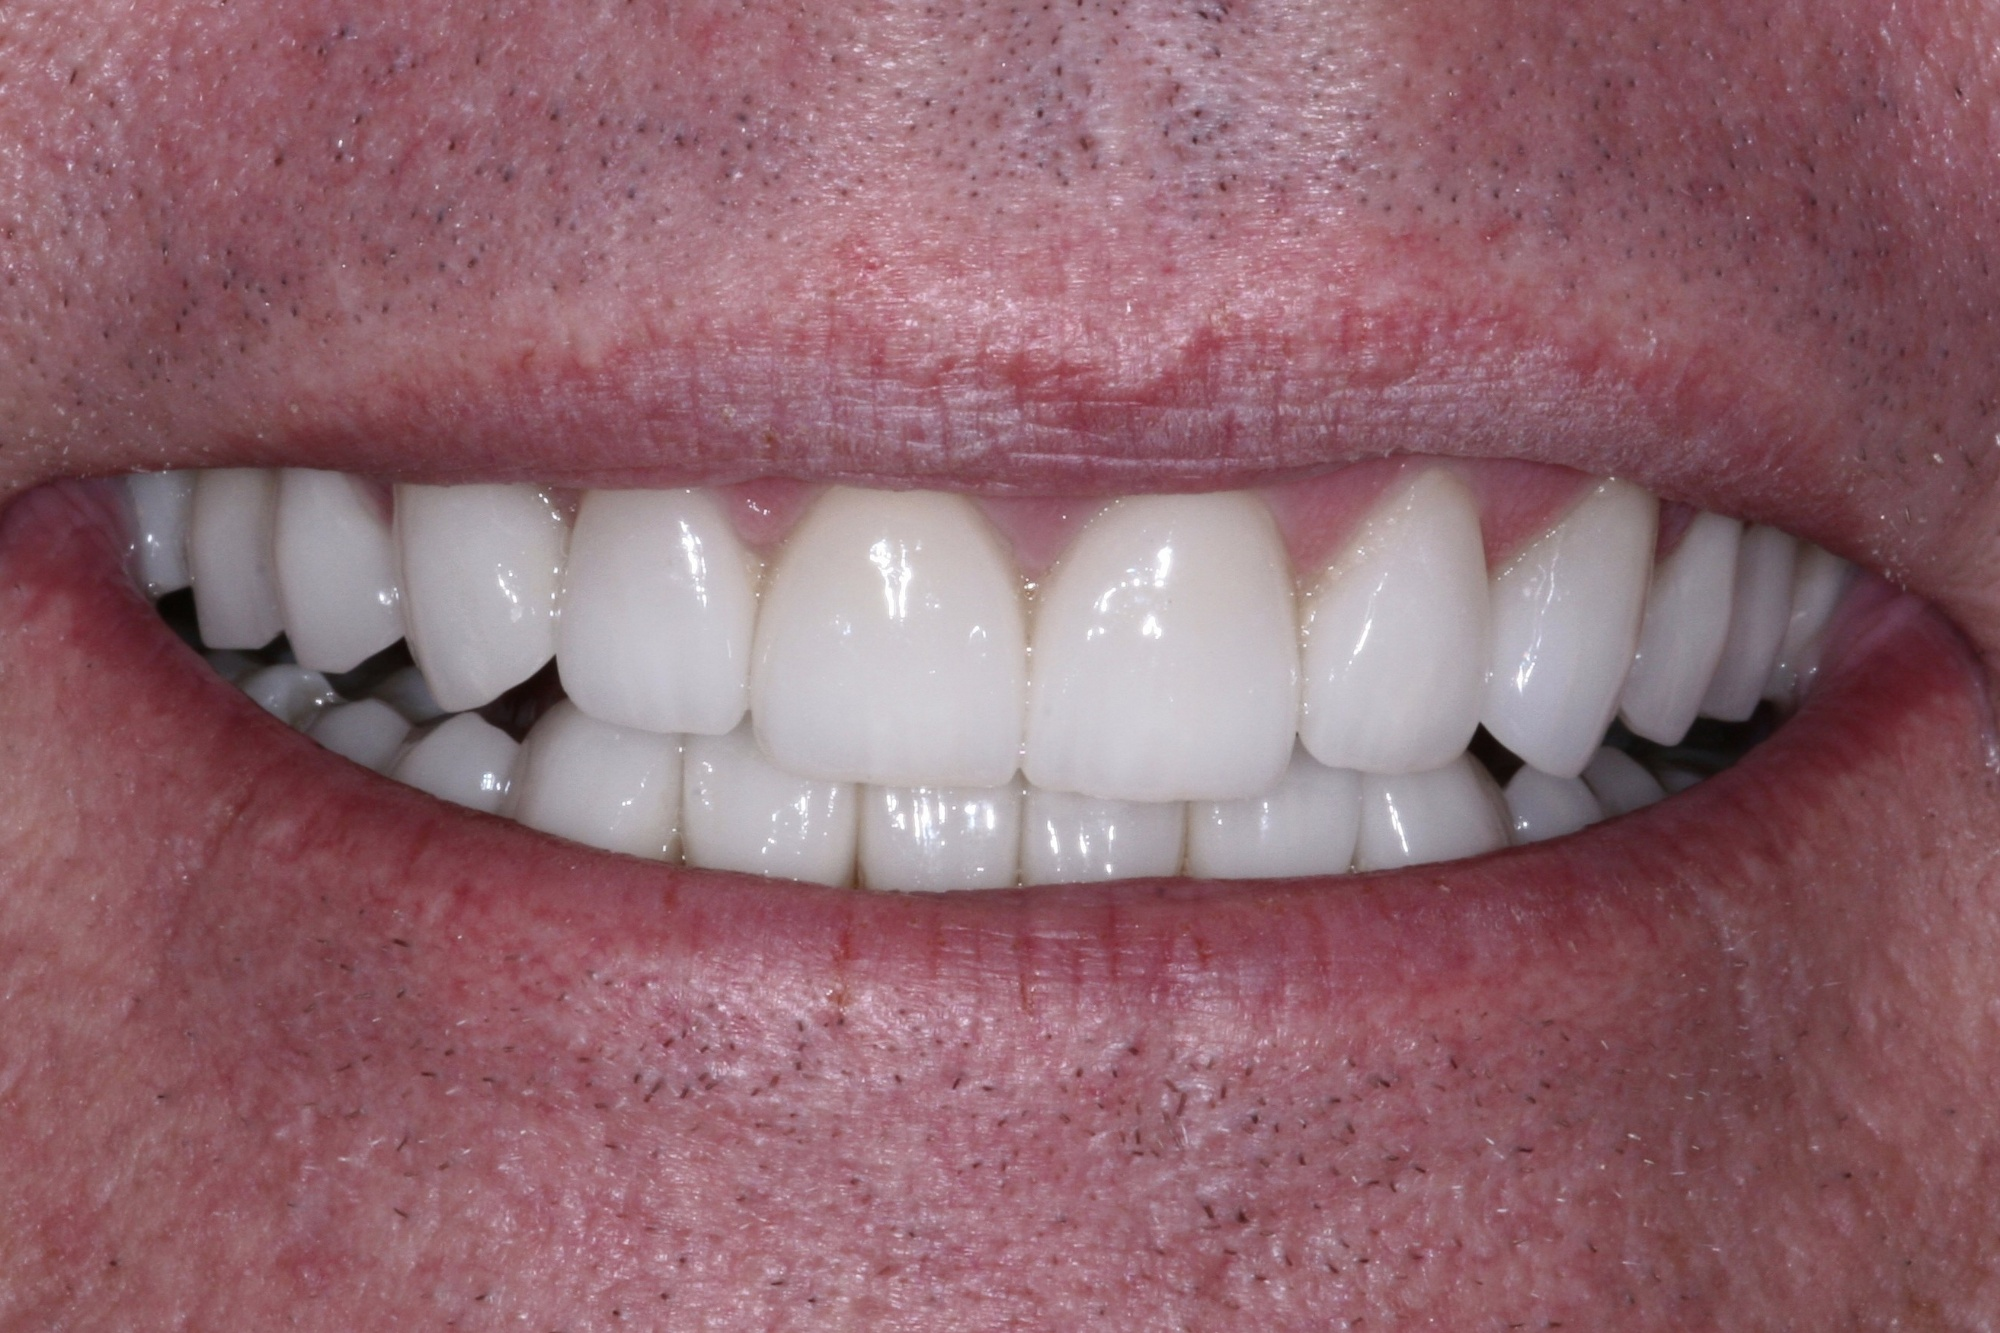 Steve's Smile After Cosmetic Dentistry Treatment